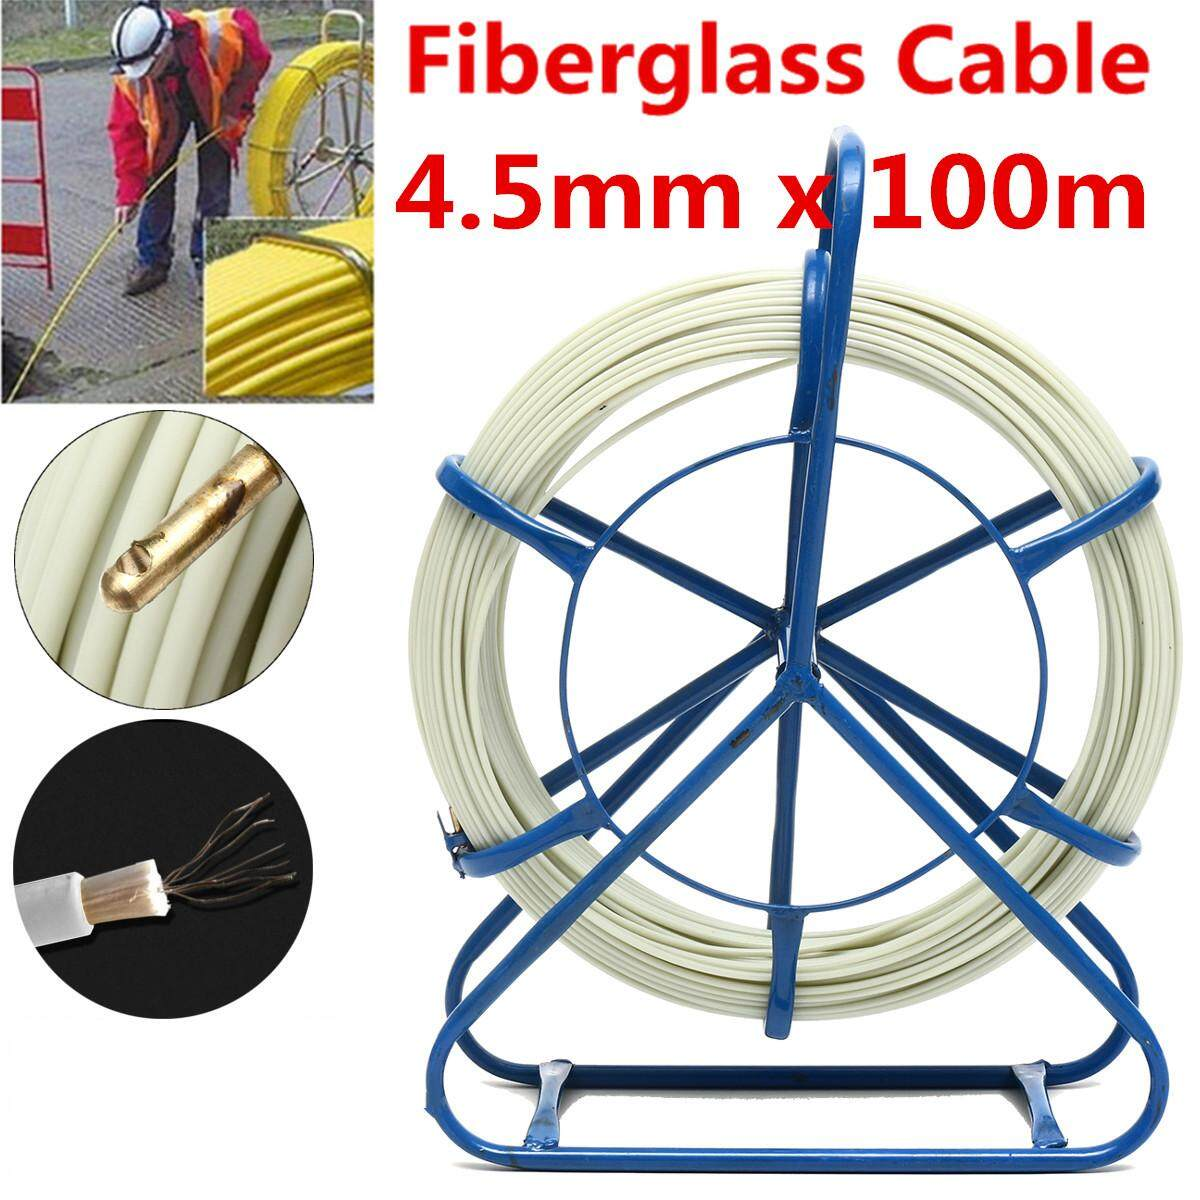 Features 10m Electrician Fish Tape Conduit Ducting Cable Puller Wiring Fiberglass Duct Rodder Running Rod Wire Push Pull 45mm X